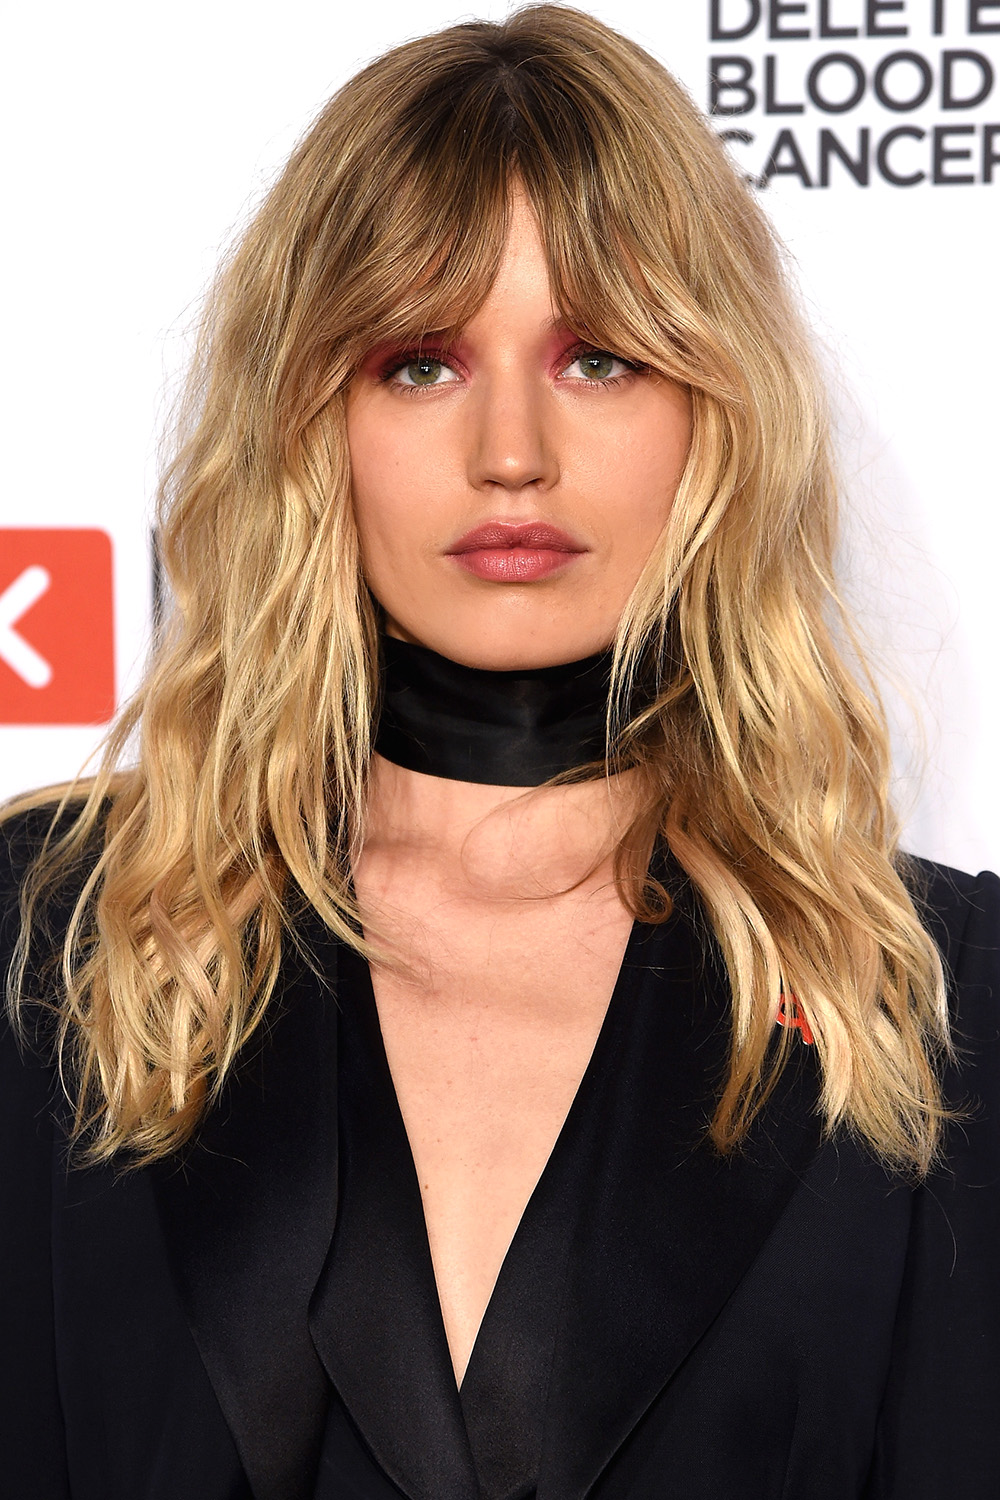 Awesome 33 Best Medium Hairstyles Celebrities With Shoulder Length Haircuts Hairstyles For Women Draintrainus